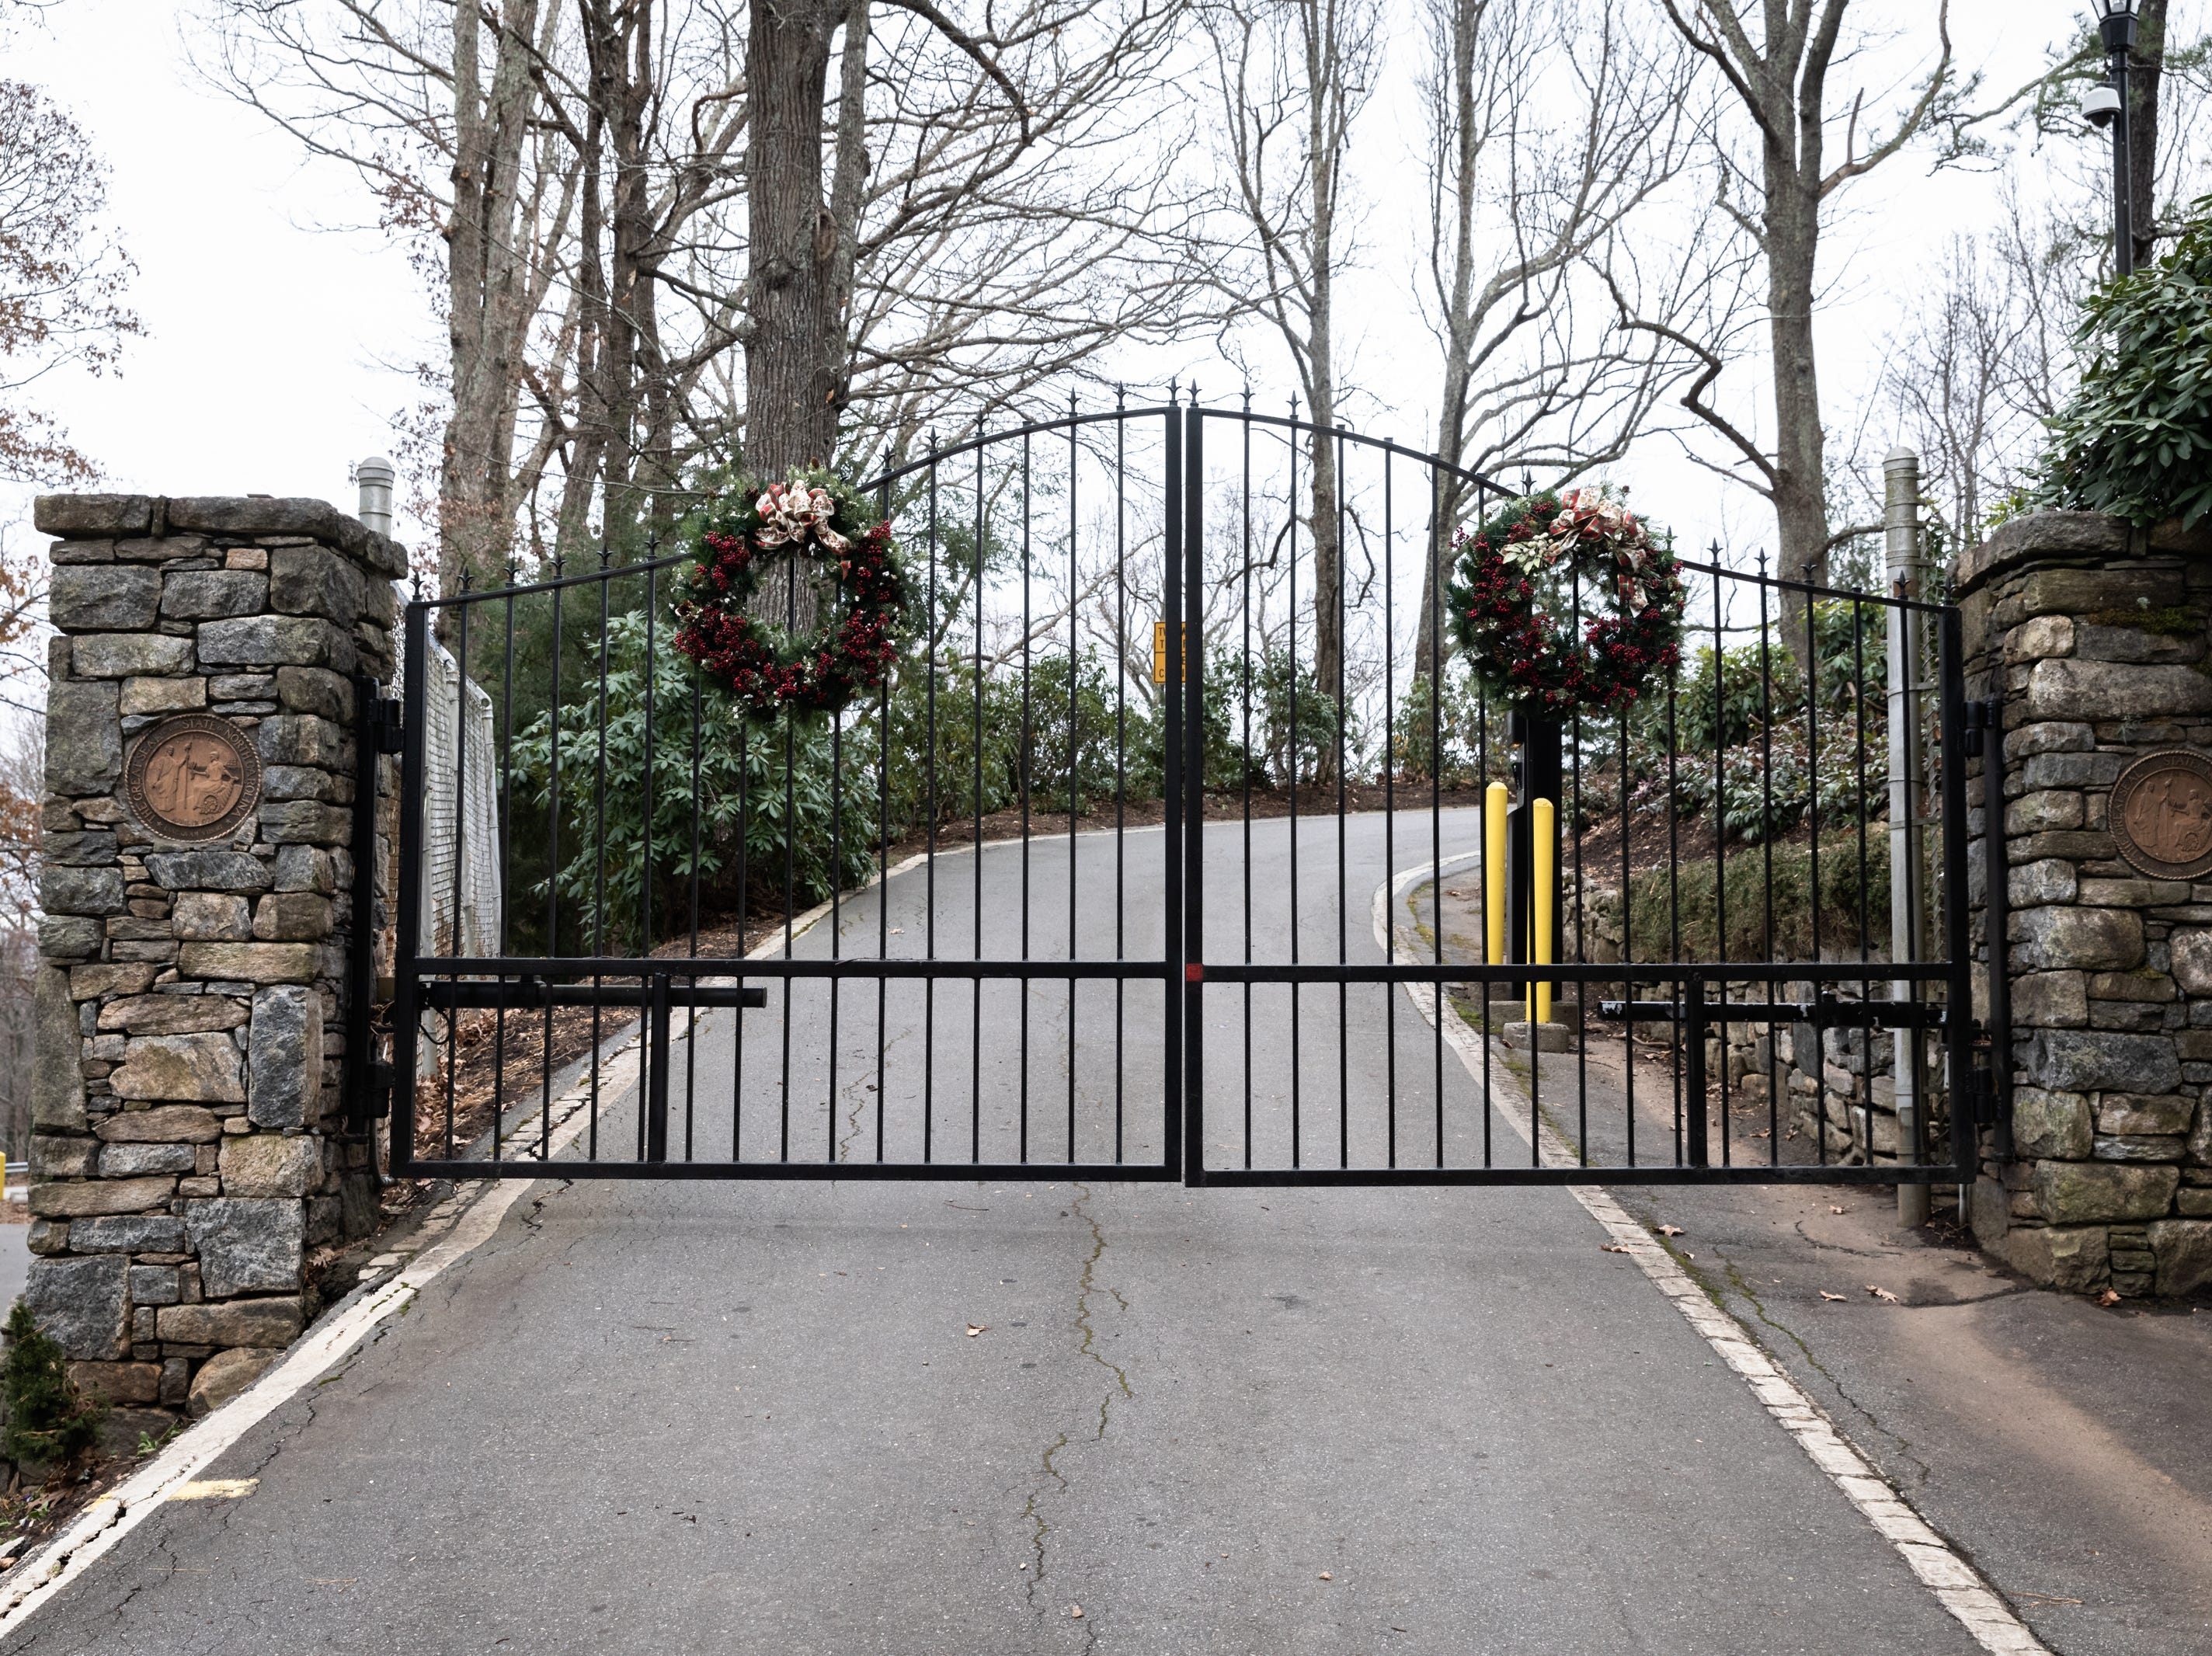 Holiday wreaths adorns the front gates of the Governor's Western Residence on Patton Mountain Road in Asheville.